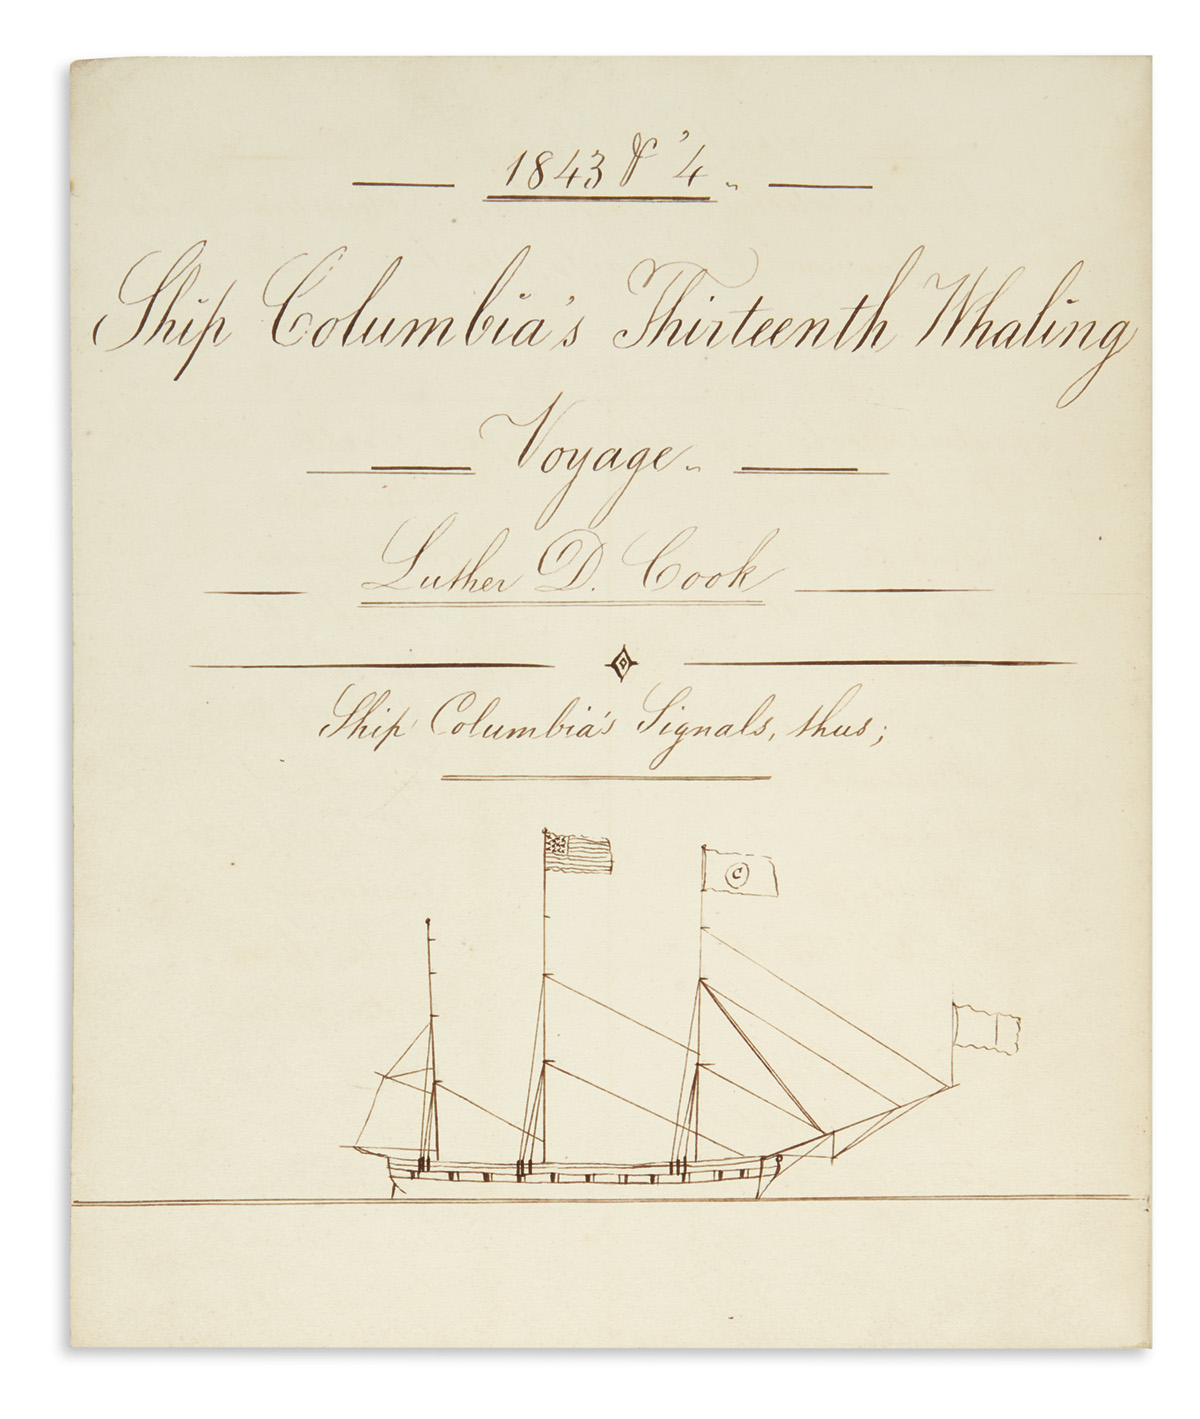 (WHALING.) Record books of Long Island whaling merchant Luther D. Cook.